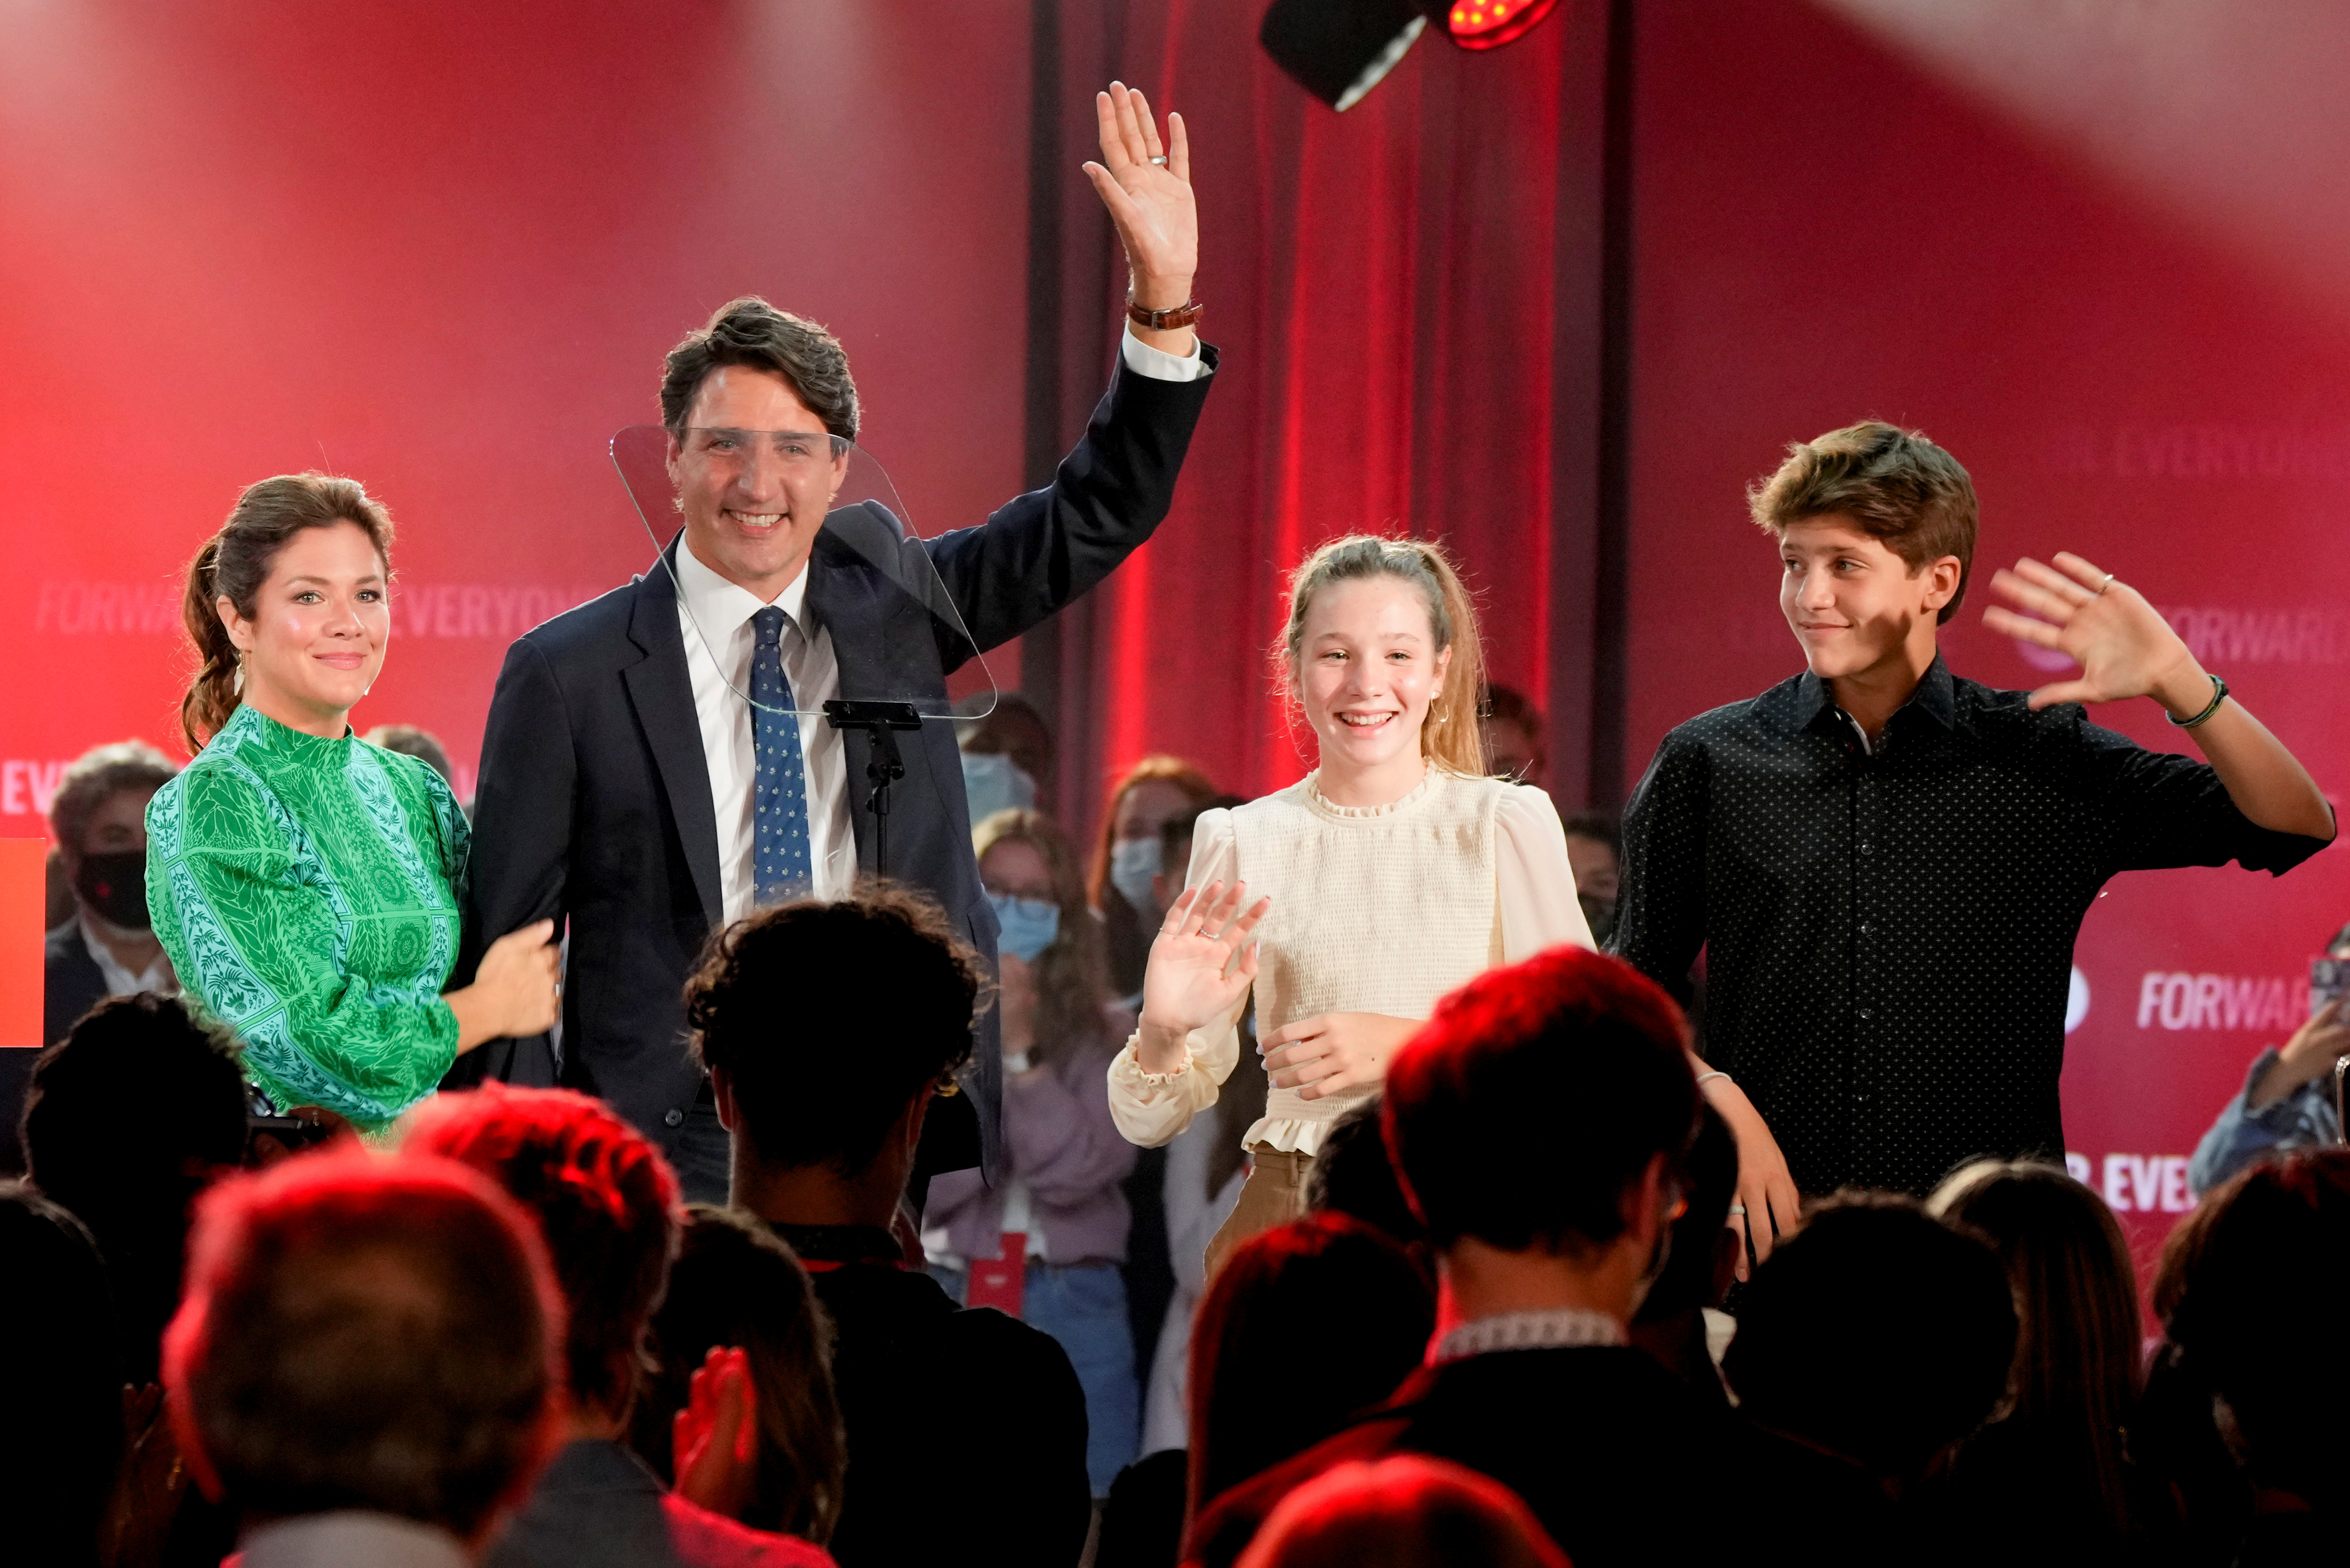 Canada's Liberal Prime Minister Justin Trudeau, accompanied by his wife Sophie Gregoire and their children Ella-Grace and Xavier, waves to supporters during the Liberal election night party in Montreal, Quebec, Canada, September 21, 2021. REUTERS/Carlos Osorio